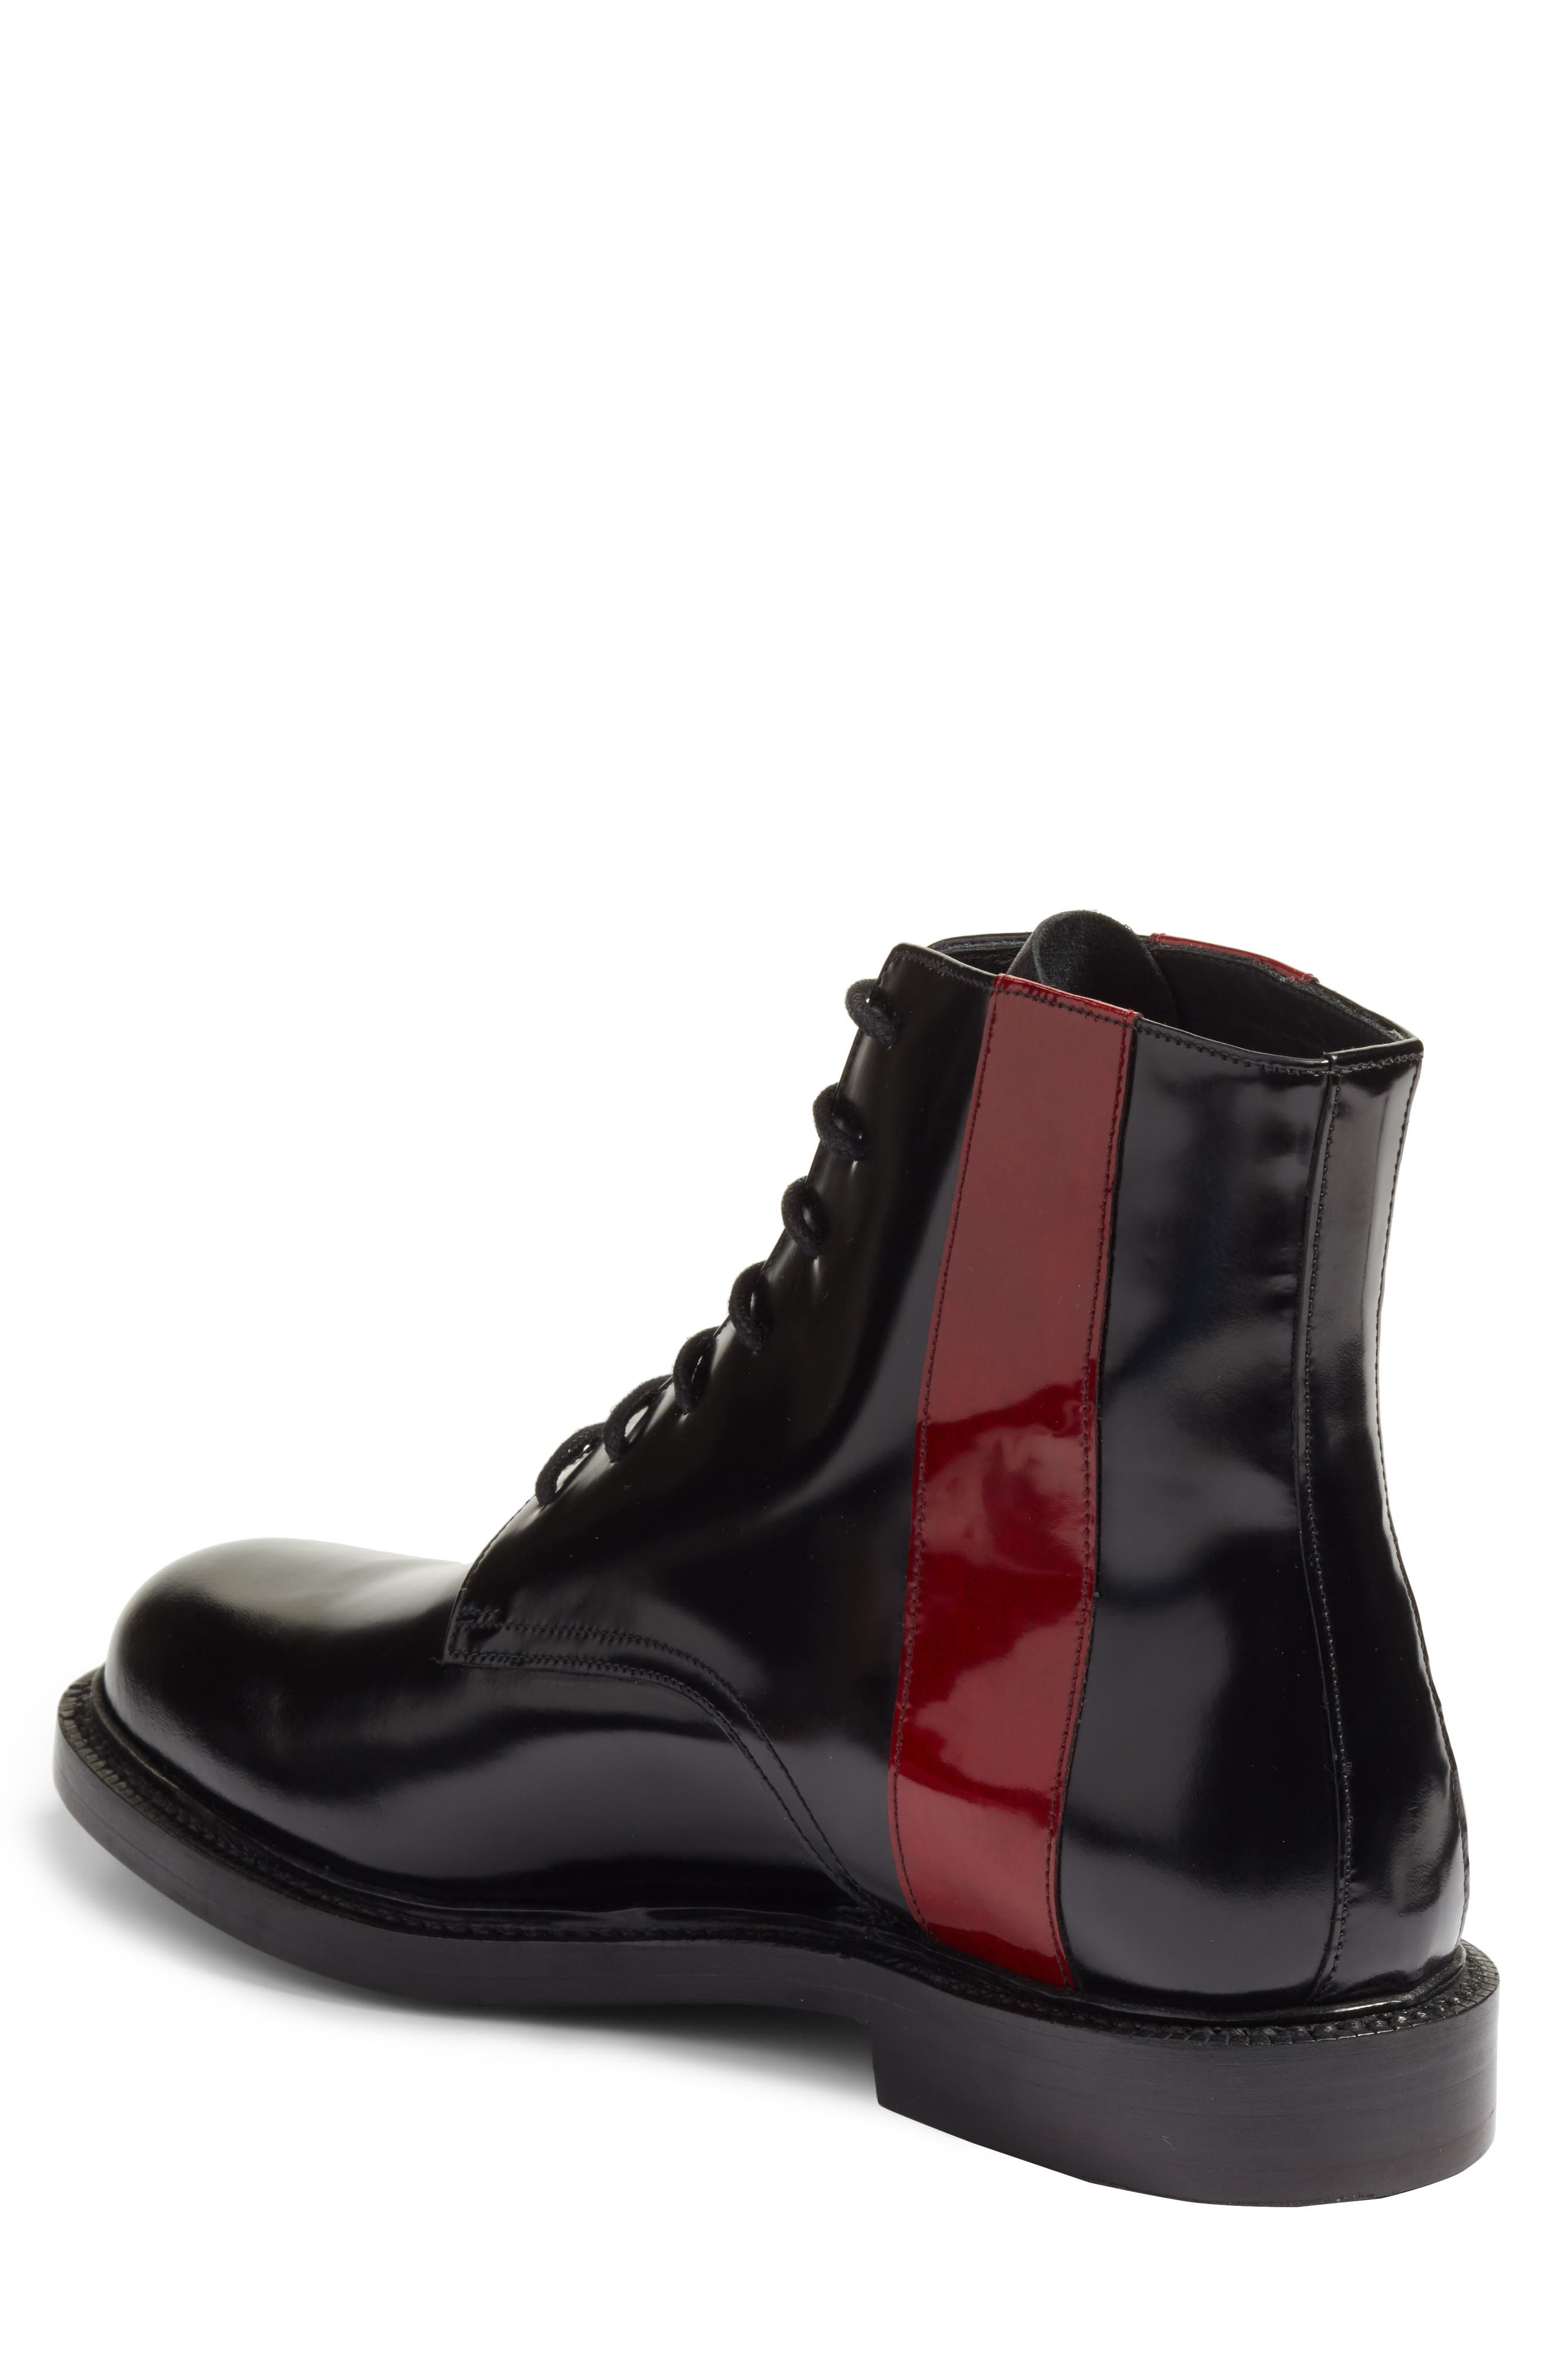 Hova Boot,                             Alternate thumbnail 2, color,                             Black/ Red Leather